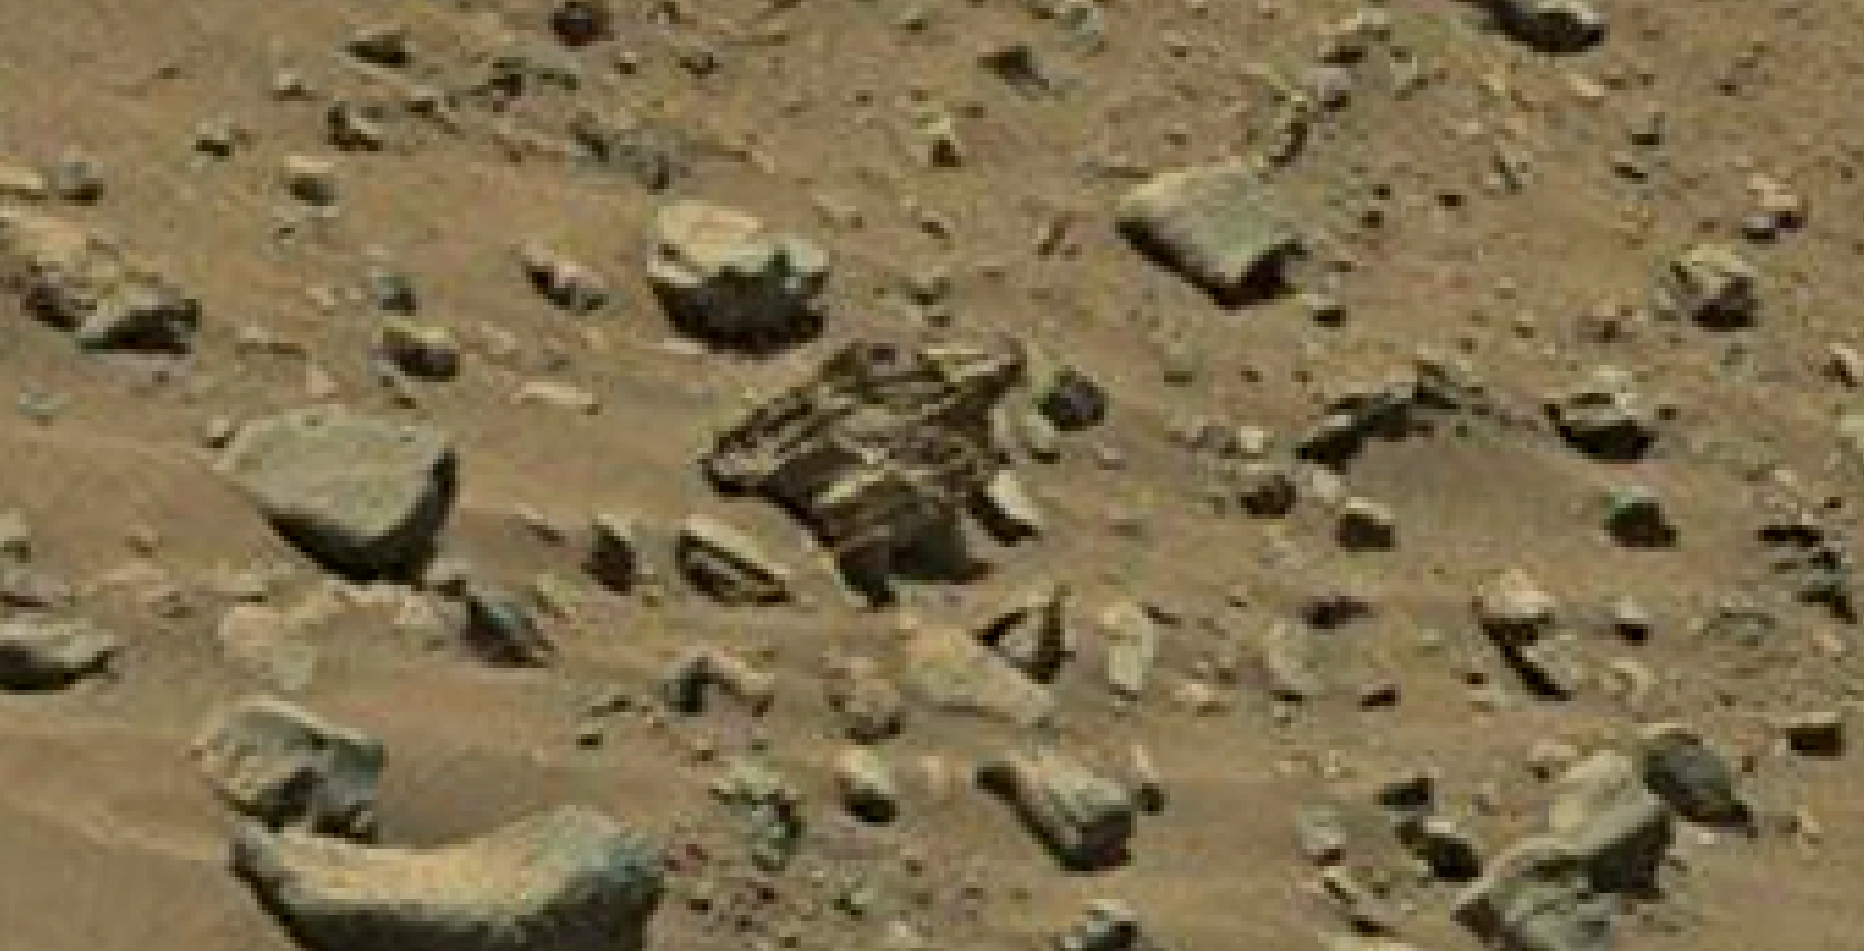 mars sol 1399 anomaly artifacts 2 was life on mars